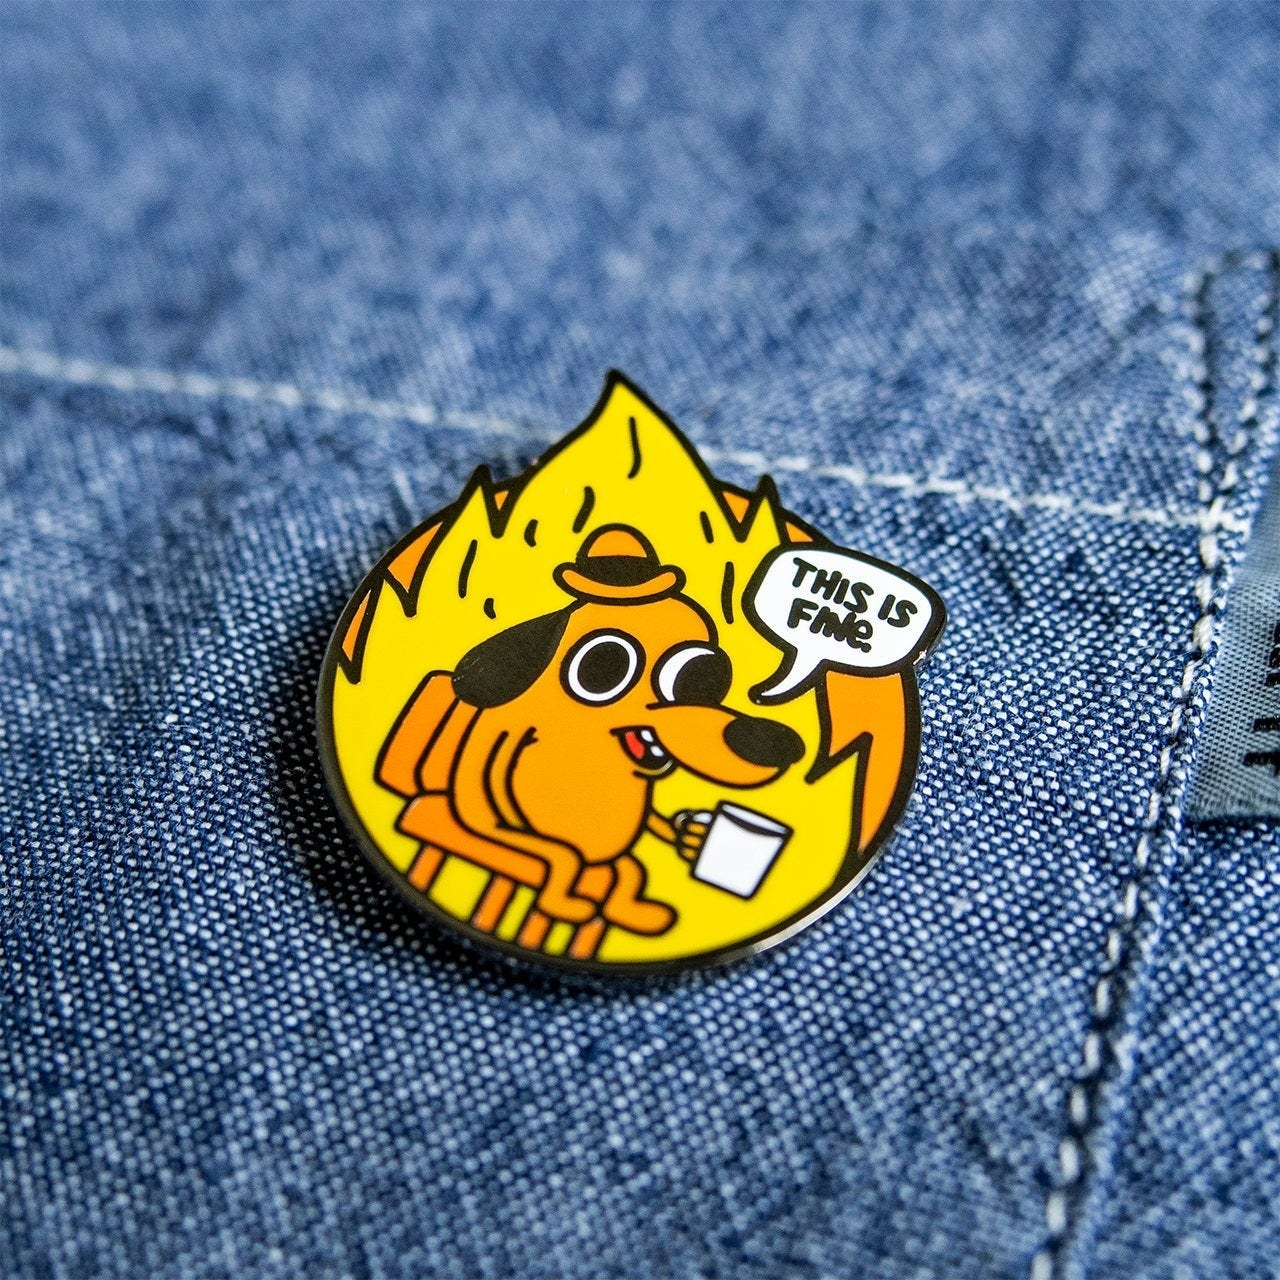 The This is Fine enamel pin.